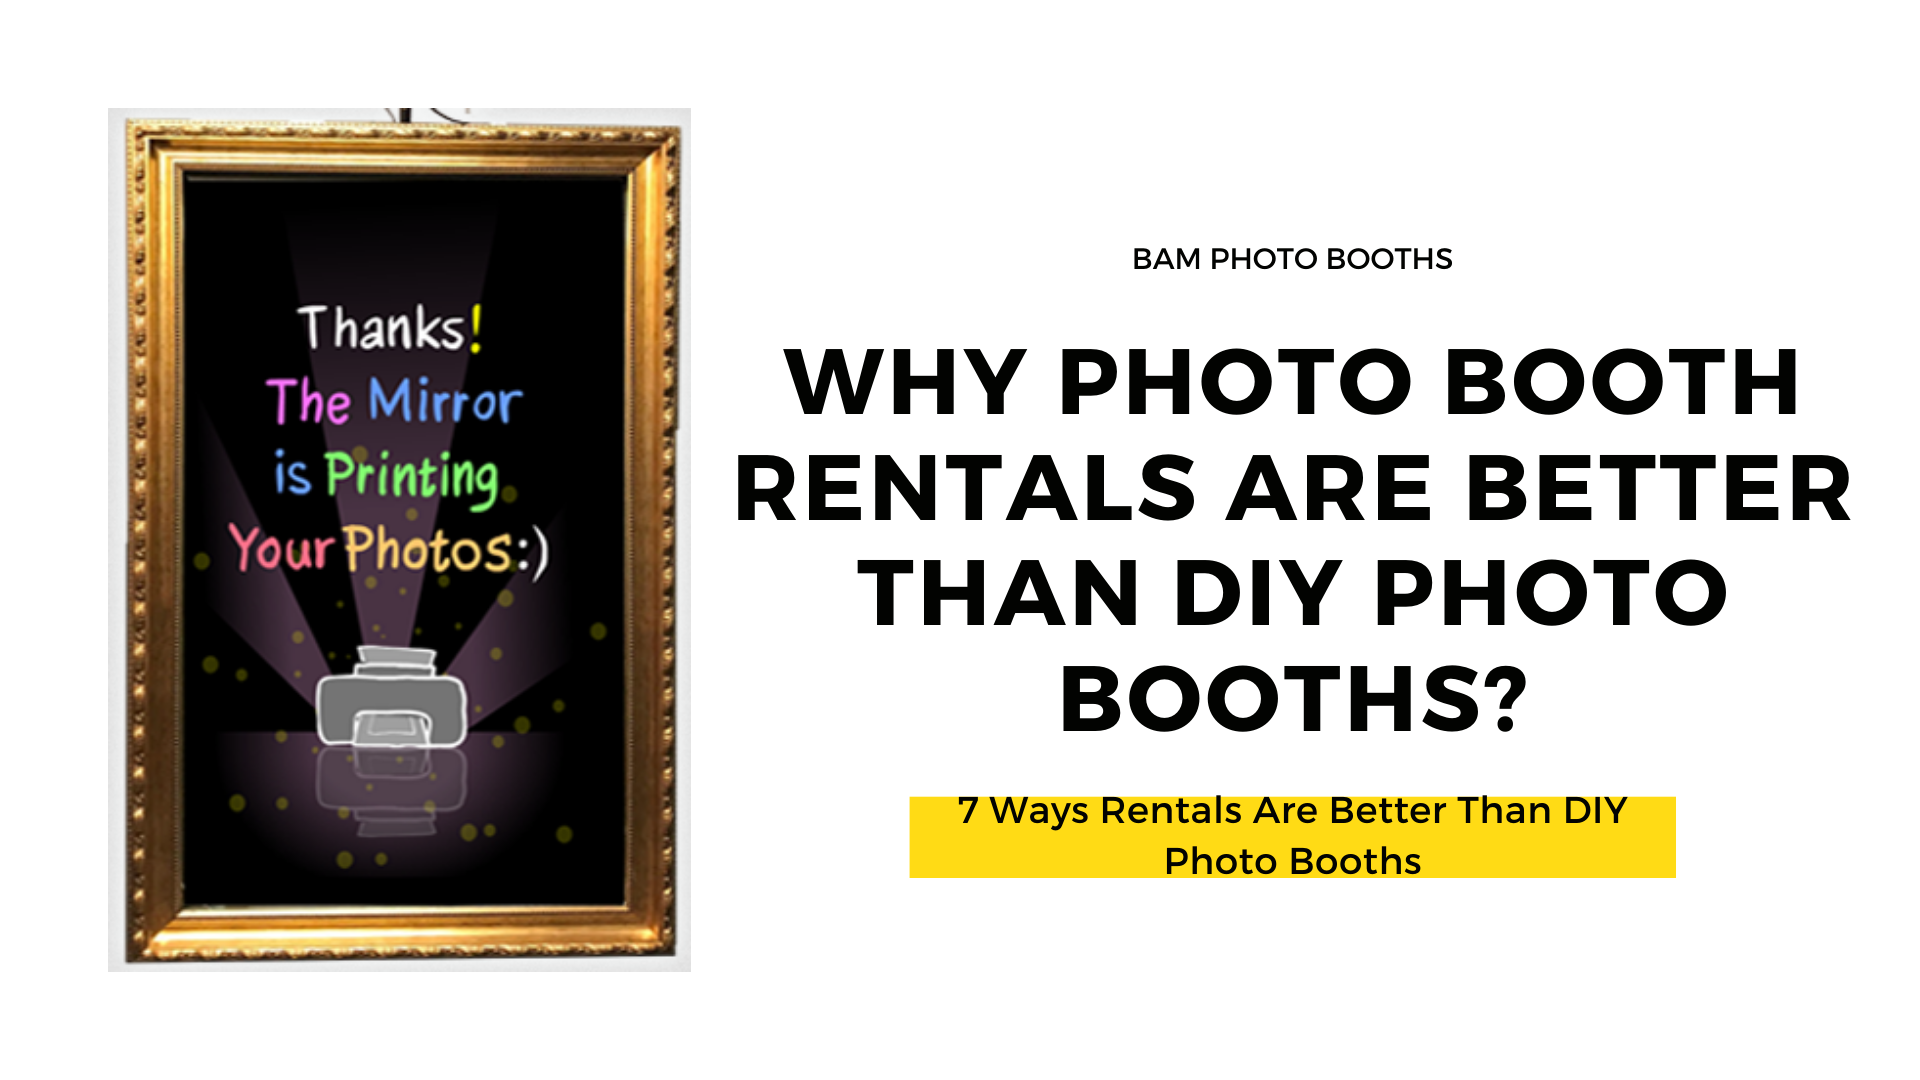 Photo Booth Rentals Are Better Than DIY